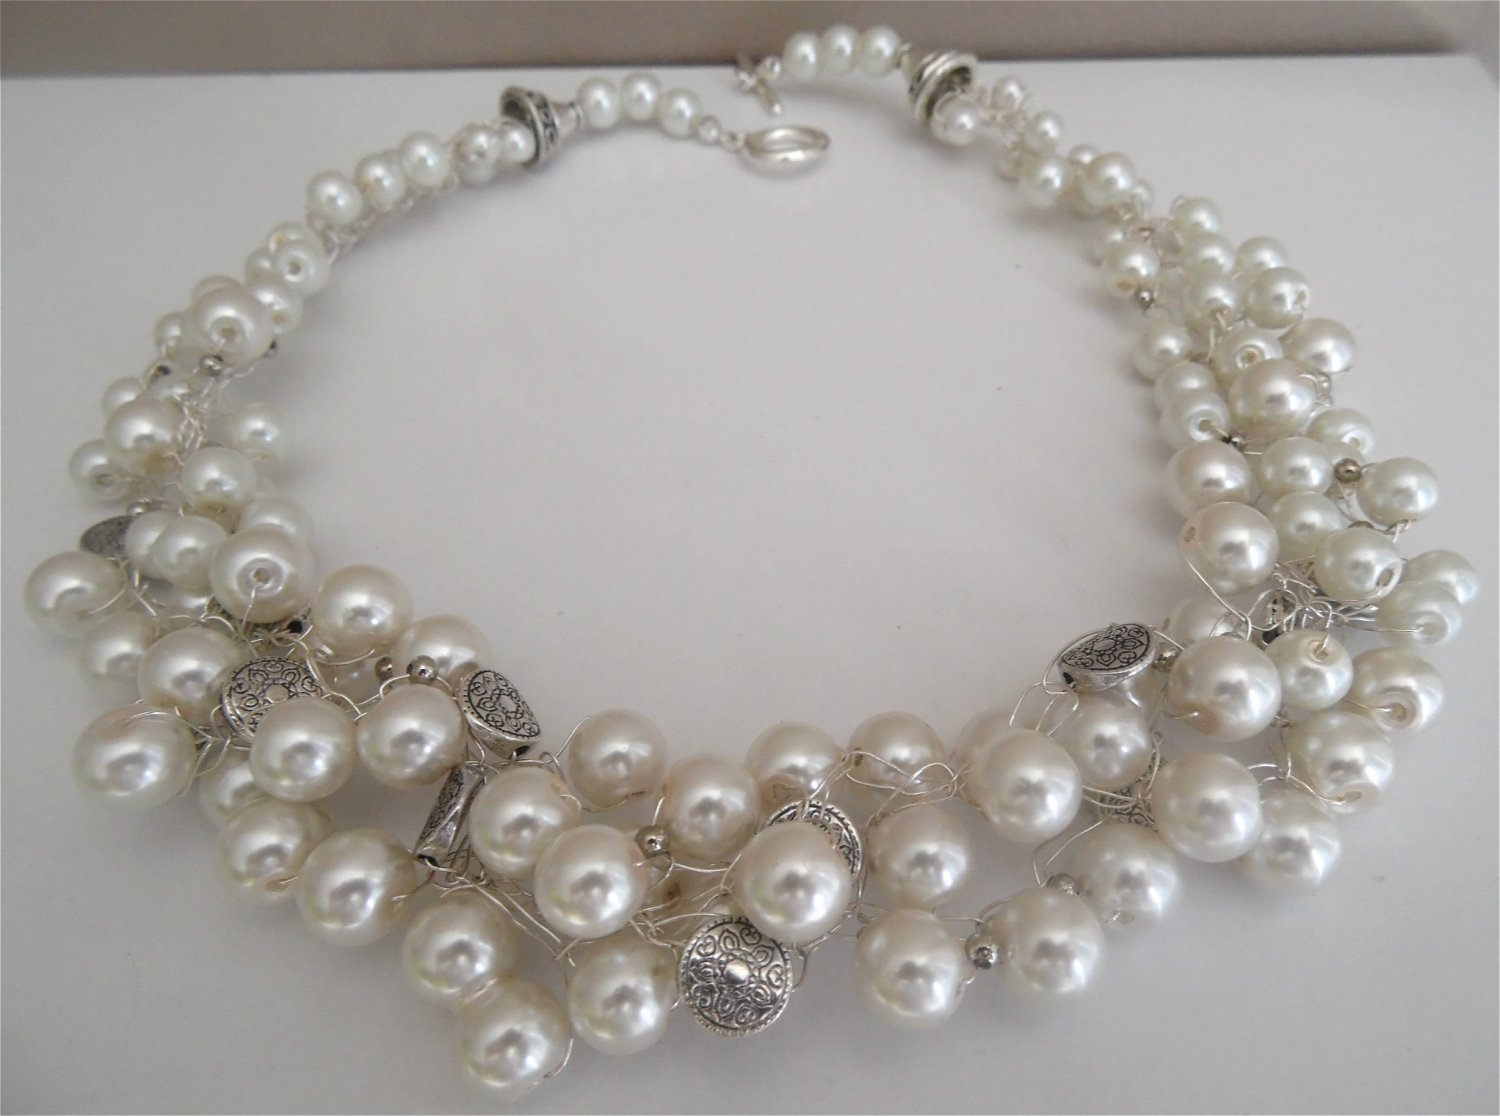 Pearl statement necklace,Crochet wire necklace, Bridal pearl jewelry, Elegant , Statement